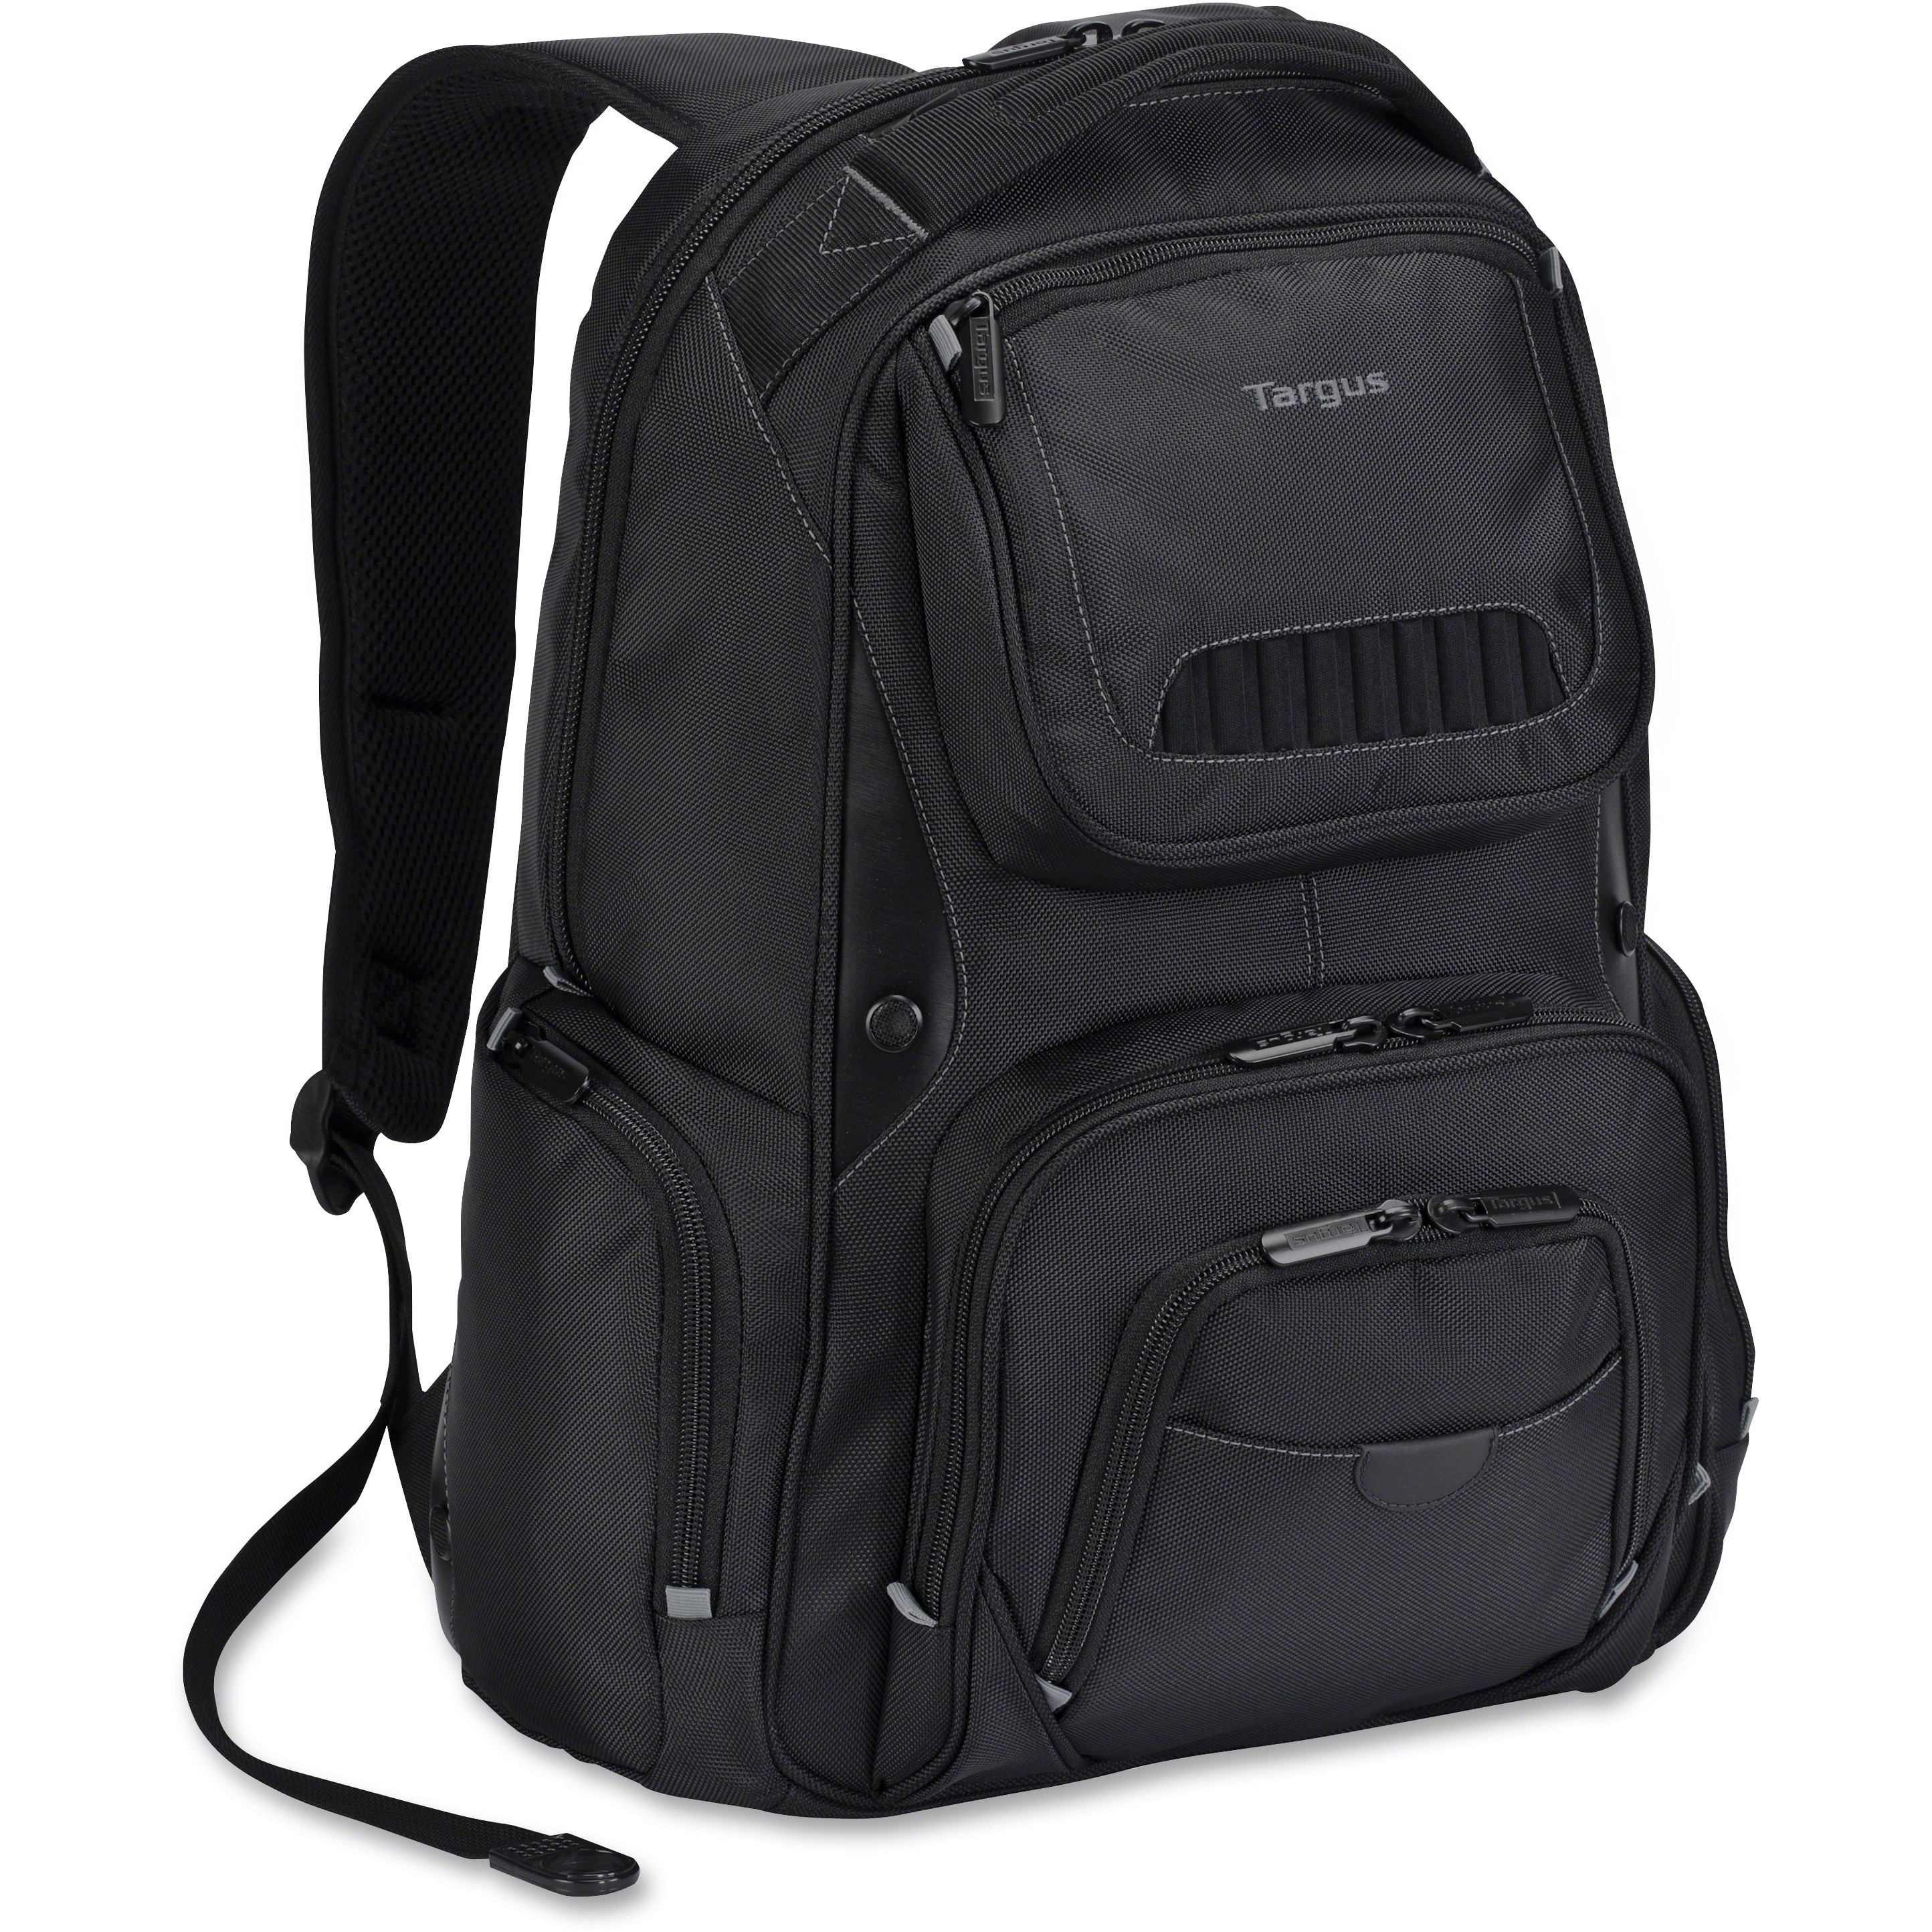 Targus, TRGTSB705US, Legend IQ Backpack Case, 1, Black